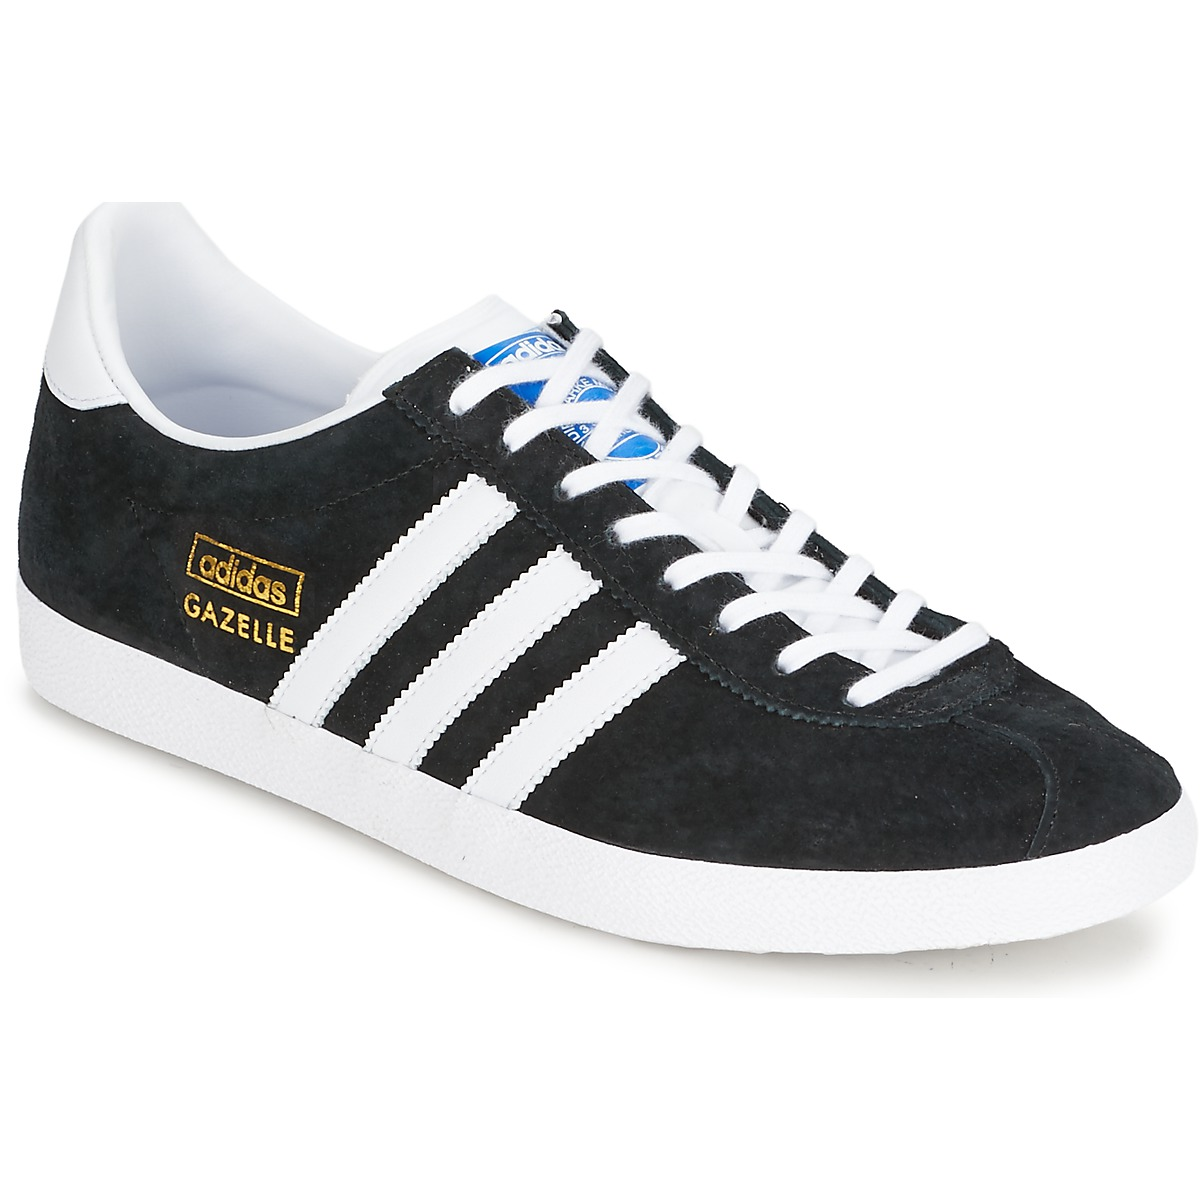 adidas originals gazelle og noir blanc or chaussures baskets basses 70 00. Black Bedroom Furniture Sets. Home Design Ideas